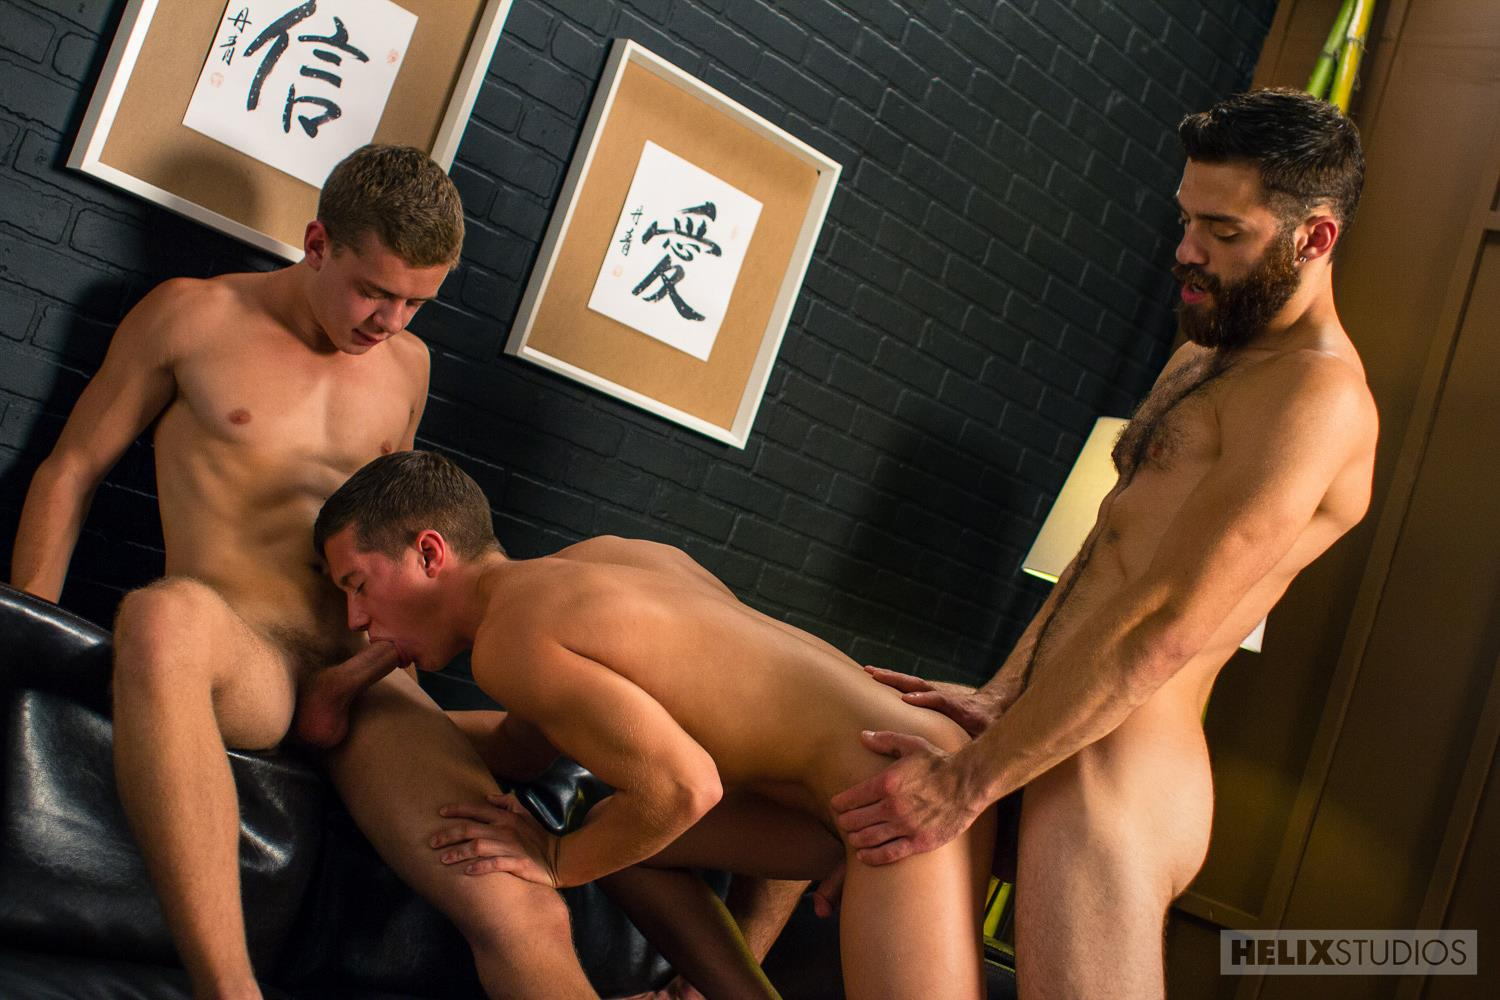 Helix-Studios-8TeenBoy-Ian-Levine-and-Tommy-Defendi-and-Tyler-Hill-Twinks-Getting-Fucked-Amateur-Gay-Porn-23 Twink Boyfriends Learn How To Fuck From Tommy Defendi